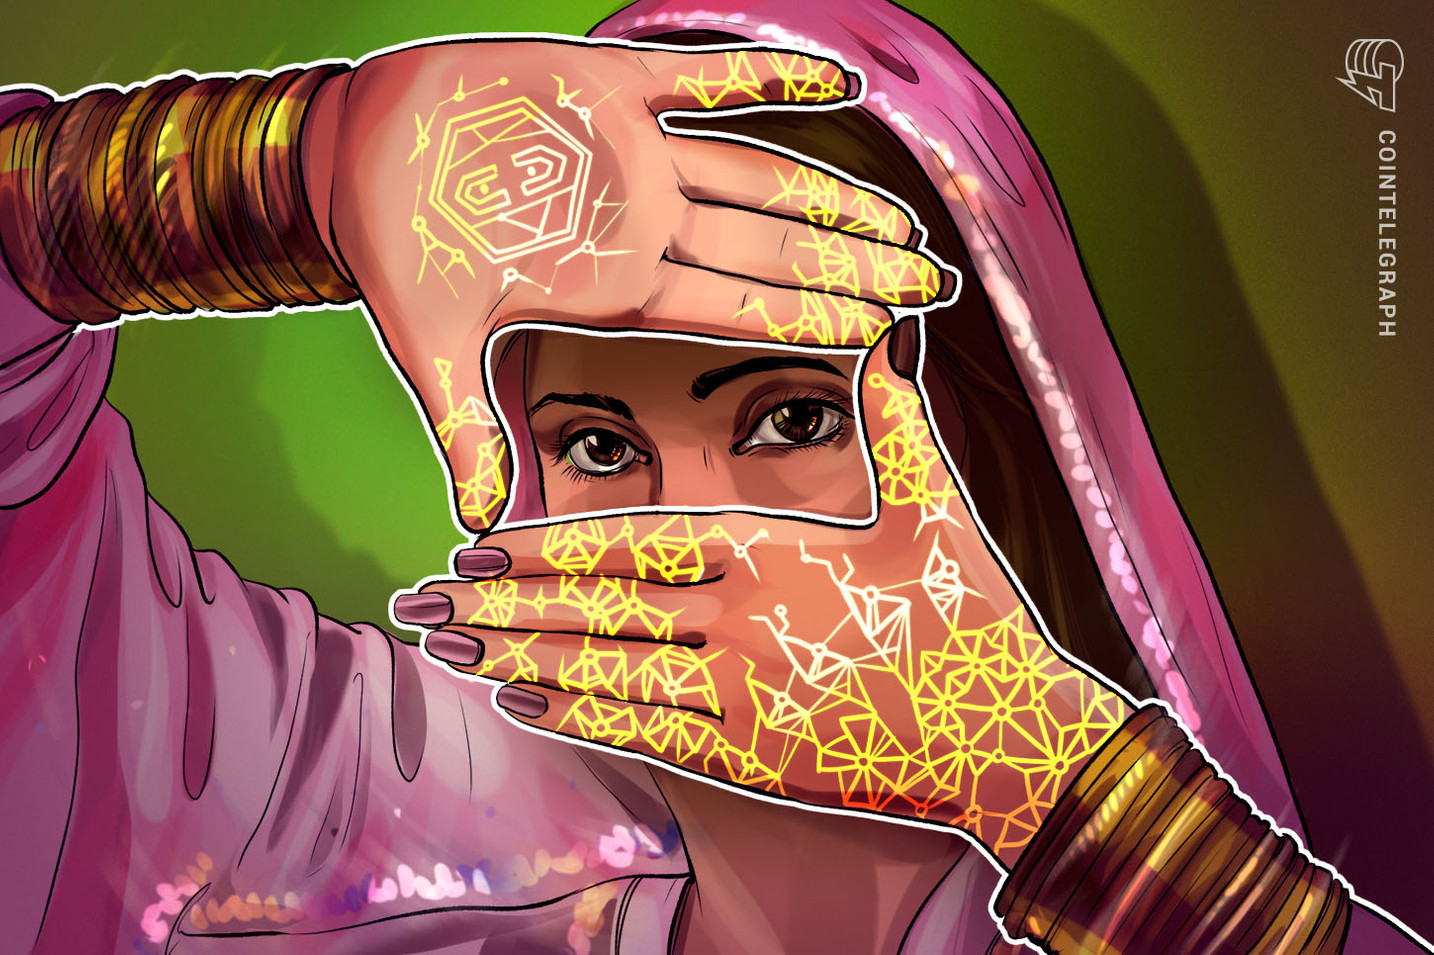 Women from small cities contribute to 65% of crypto sign ups in India